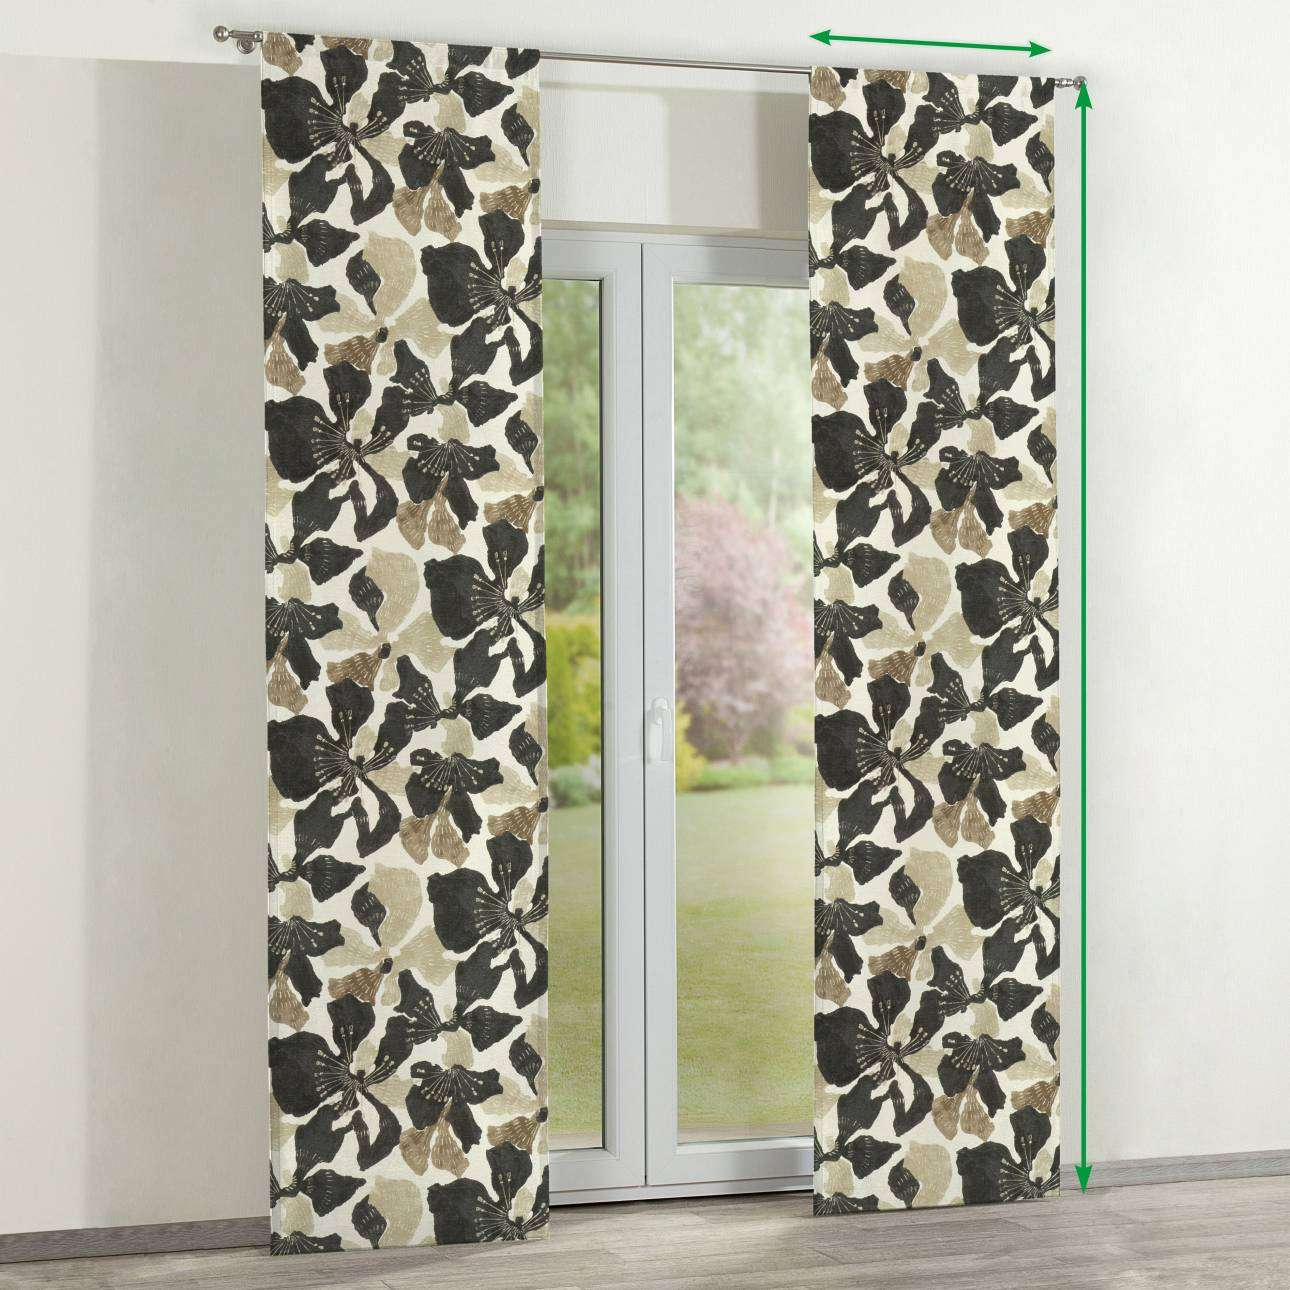 Slot panel curtains – Set of 2 in collection SALE, fabric: 141-08